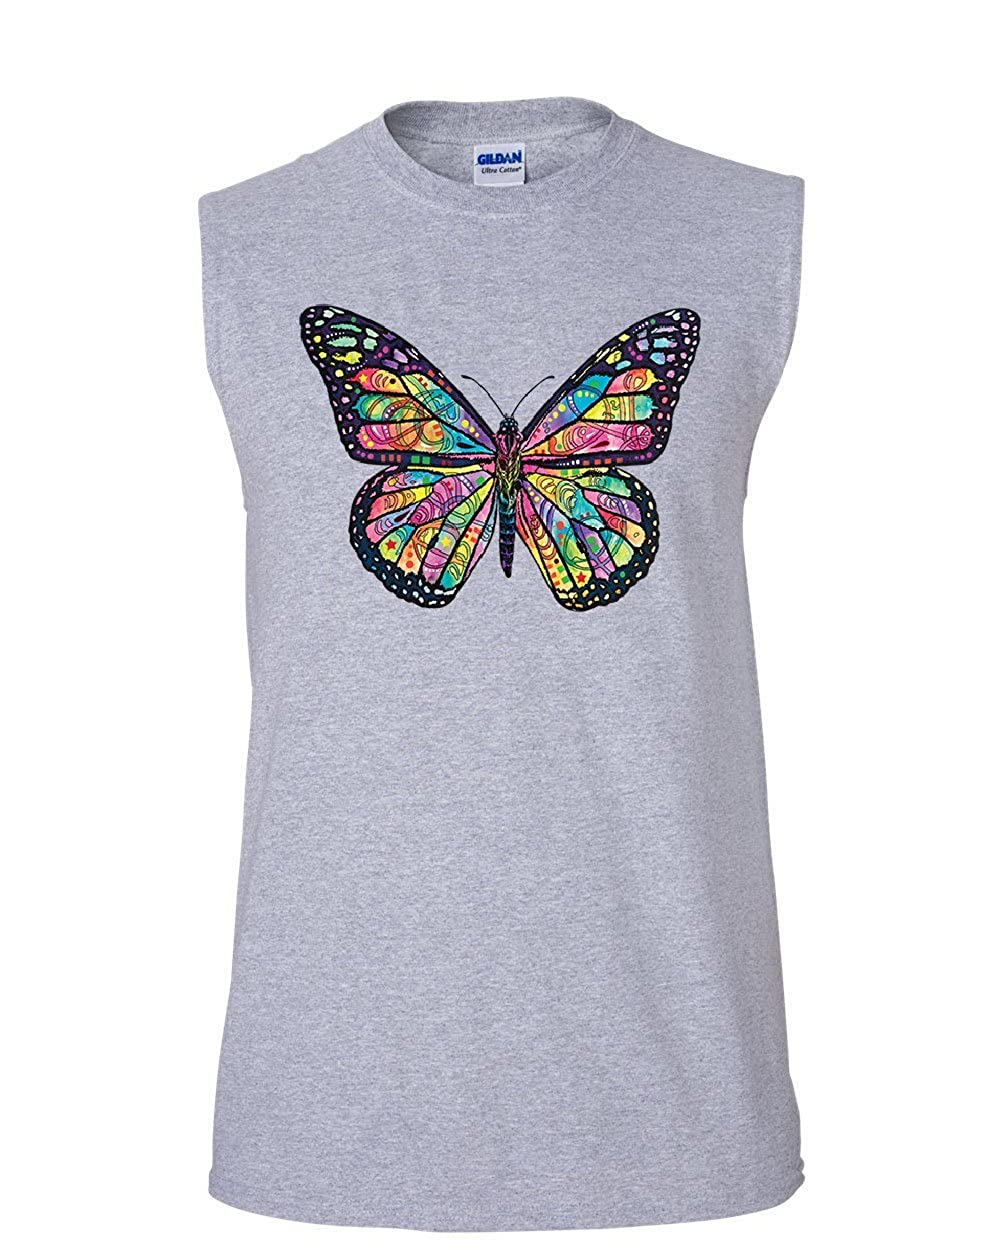 Tee Hunt Dean Russo Butterfly Muscle Shirt Multicolor Summer Wings Monarch Sleeveless